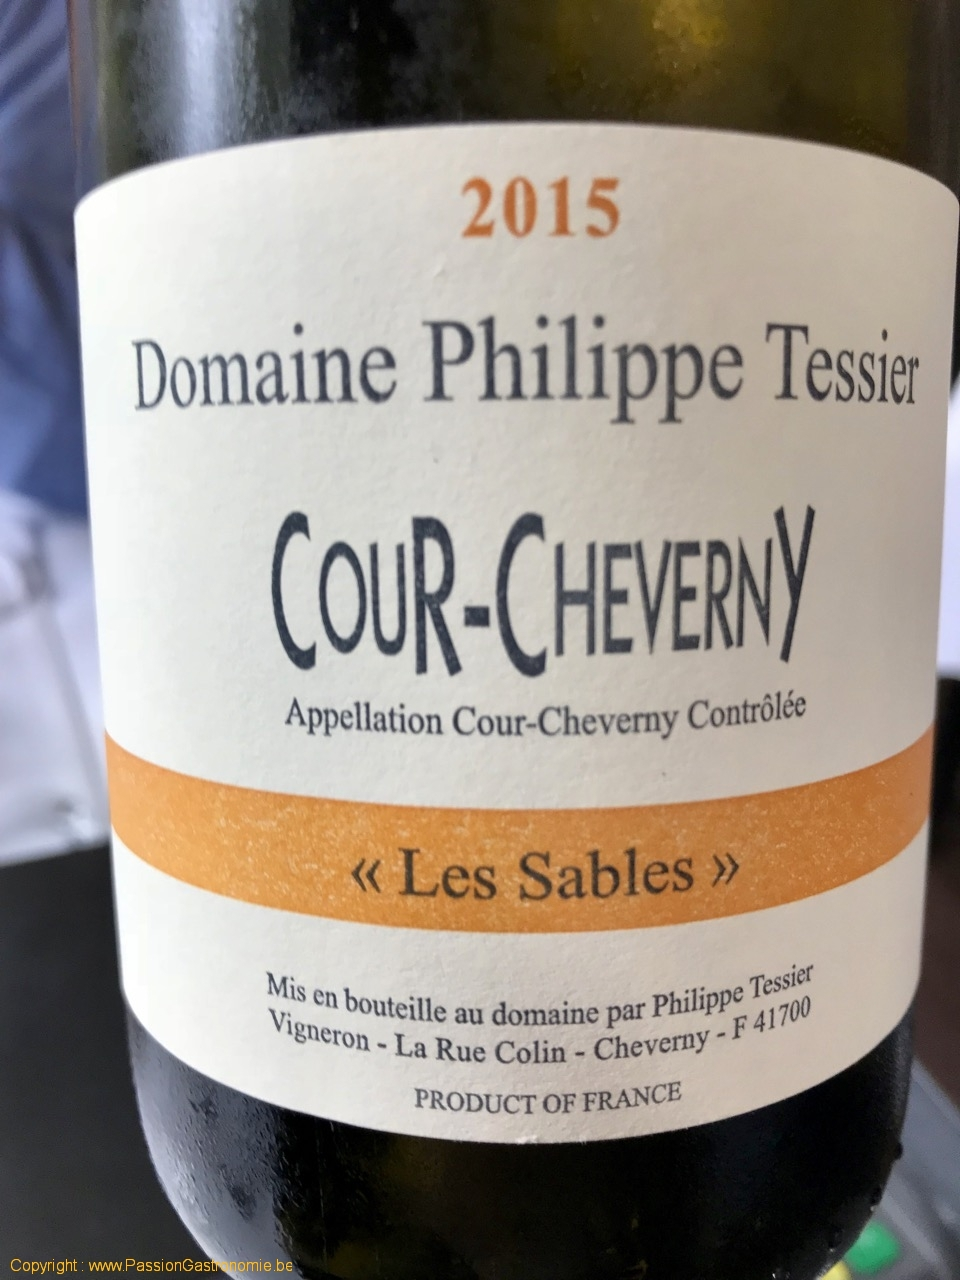 Restaurant Maxime Colin - Domaine Philippe Tessier Cour-Cheverny